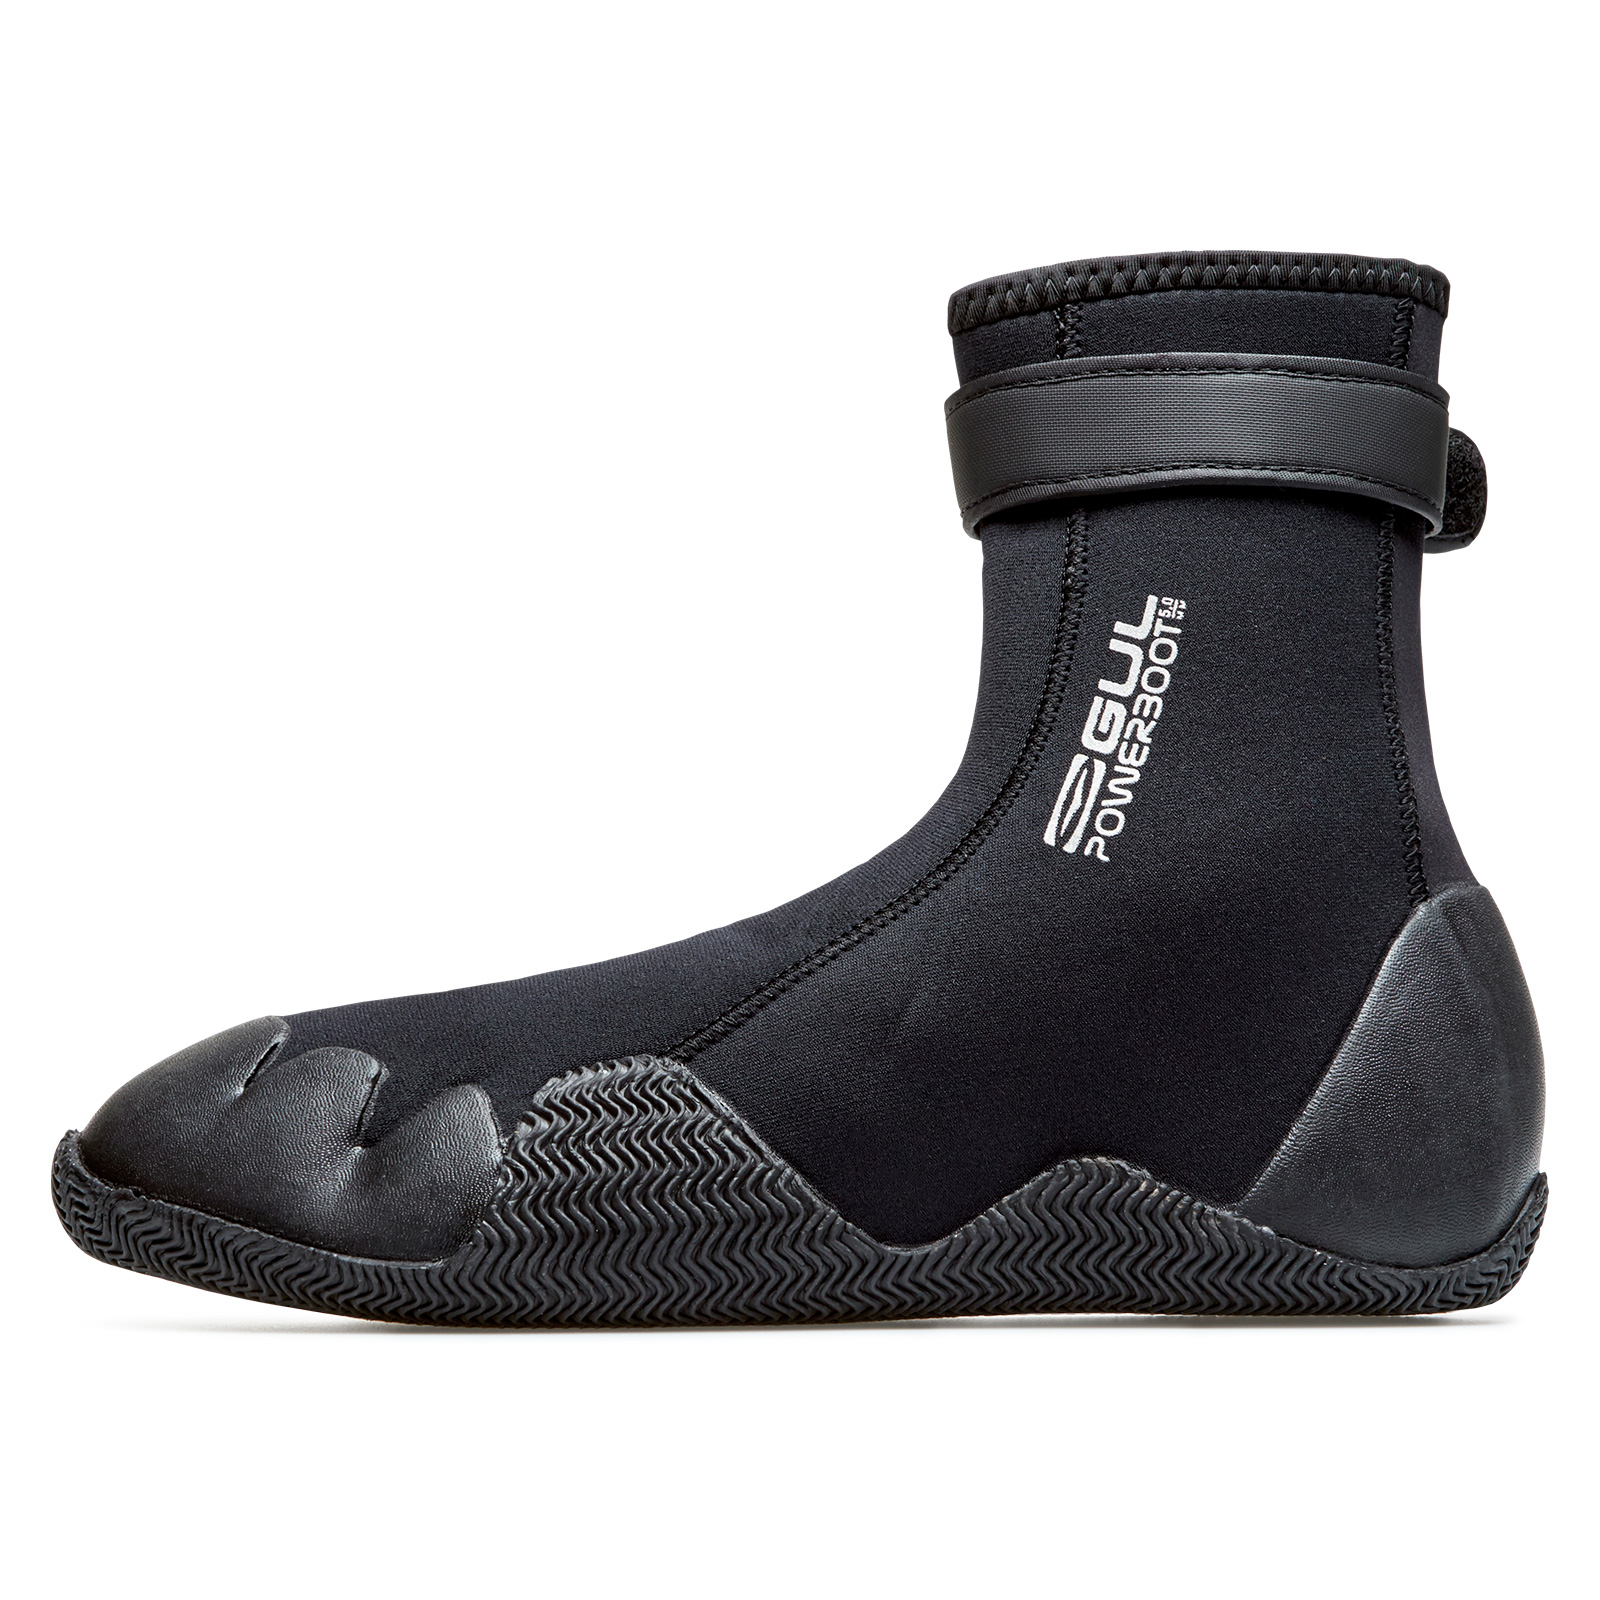 Gul-5mm-Power-Neoprene-Adult-Wetsuit-Boots-Watersports-Surf-Sail-Swim-Mens-Boot thumbnail 18